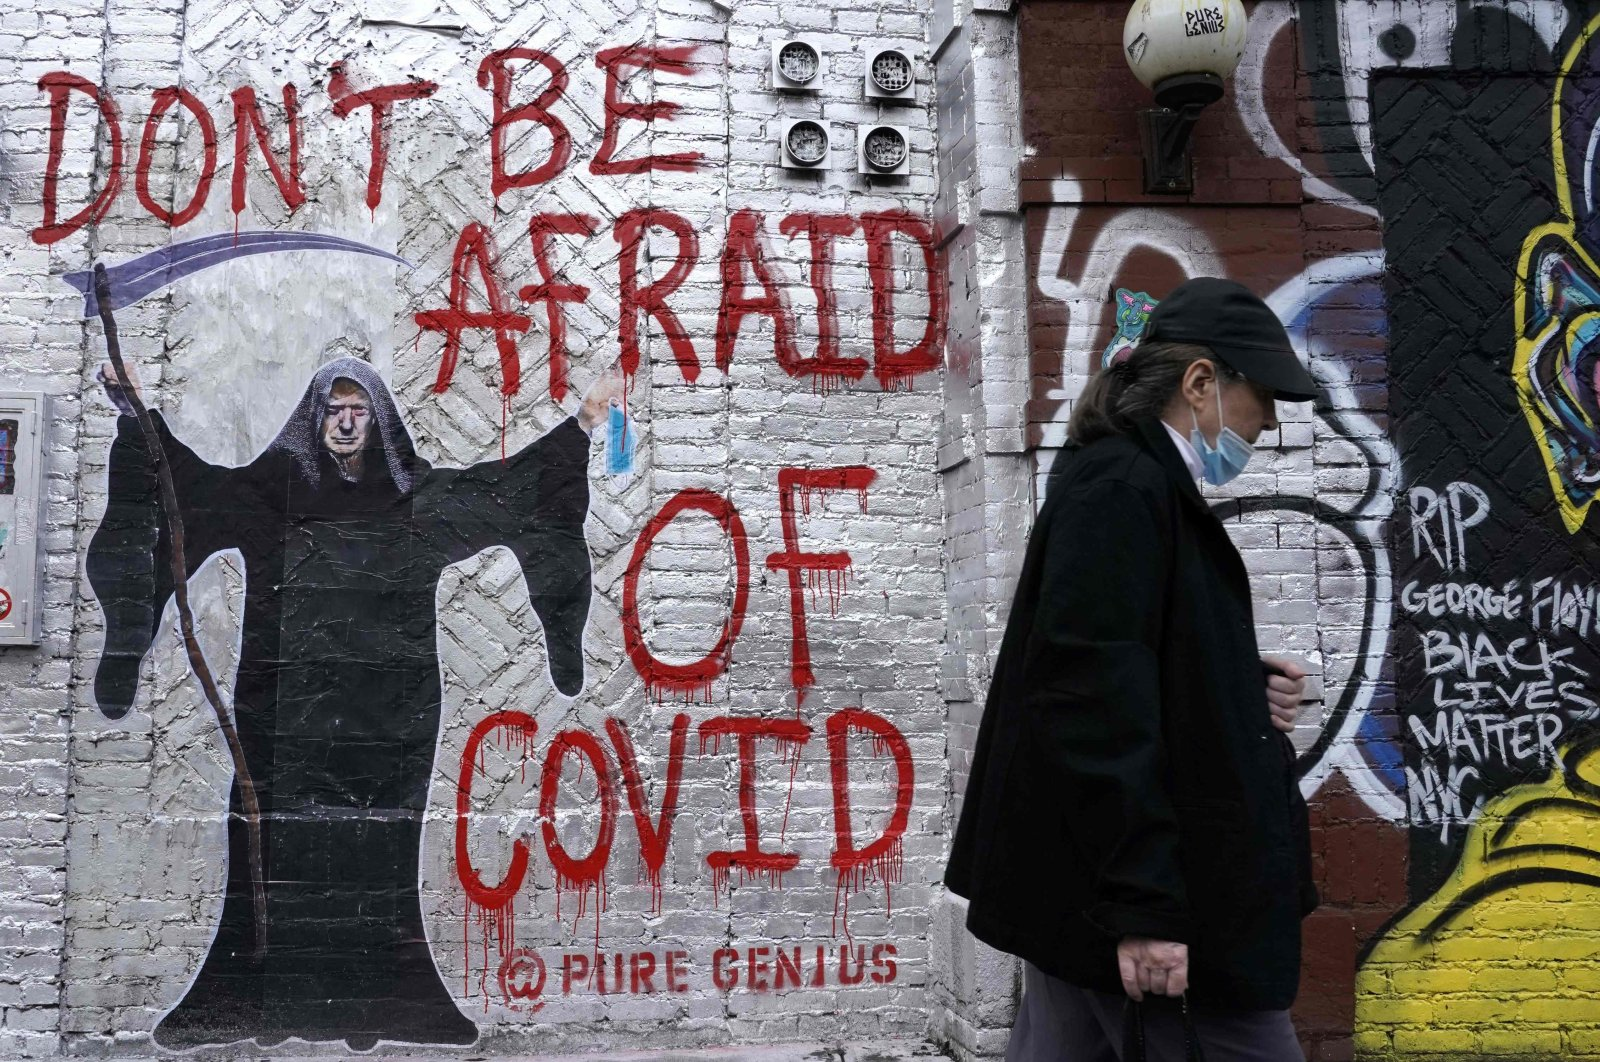 """A person walks past a mural by an artist who goes by """"Pure Genius"""" depicting U.S. President Donald Trump as the Grim Reaper on a wall on Houston Street, New York City, Oct. 20, 2020. (AFP Photo)"""